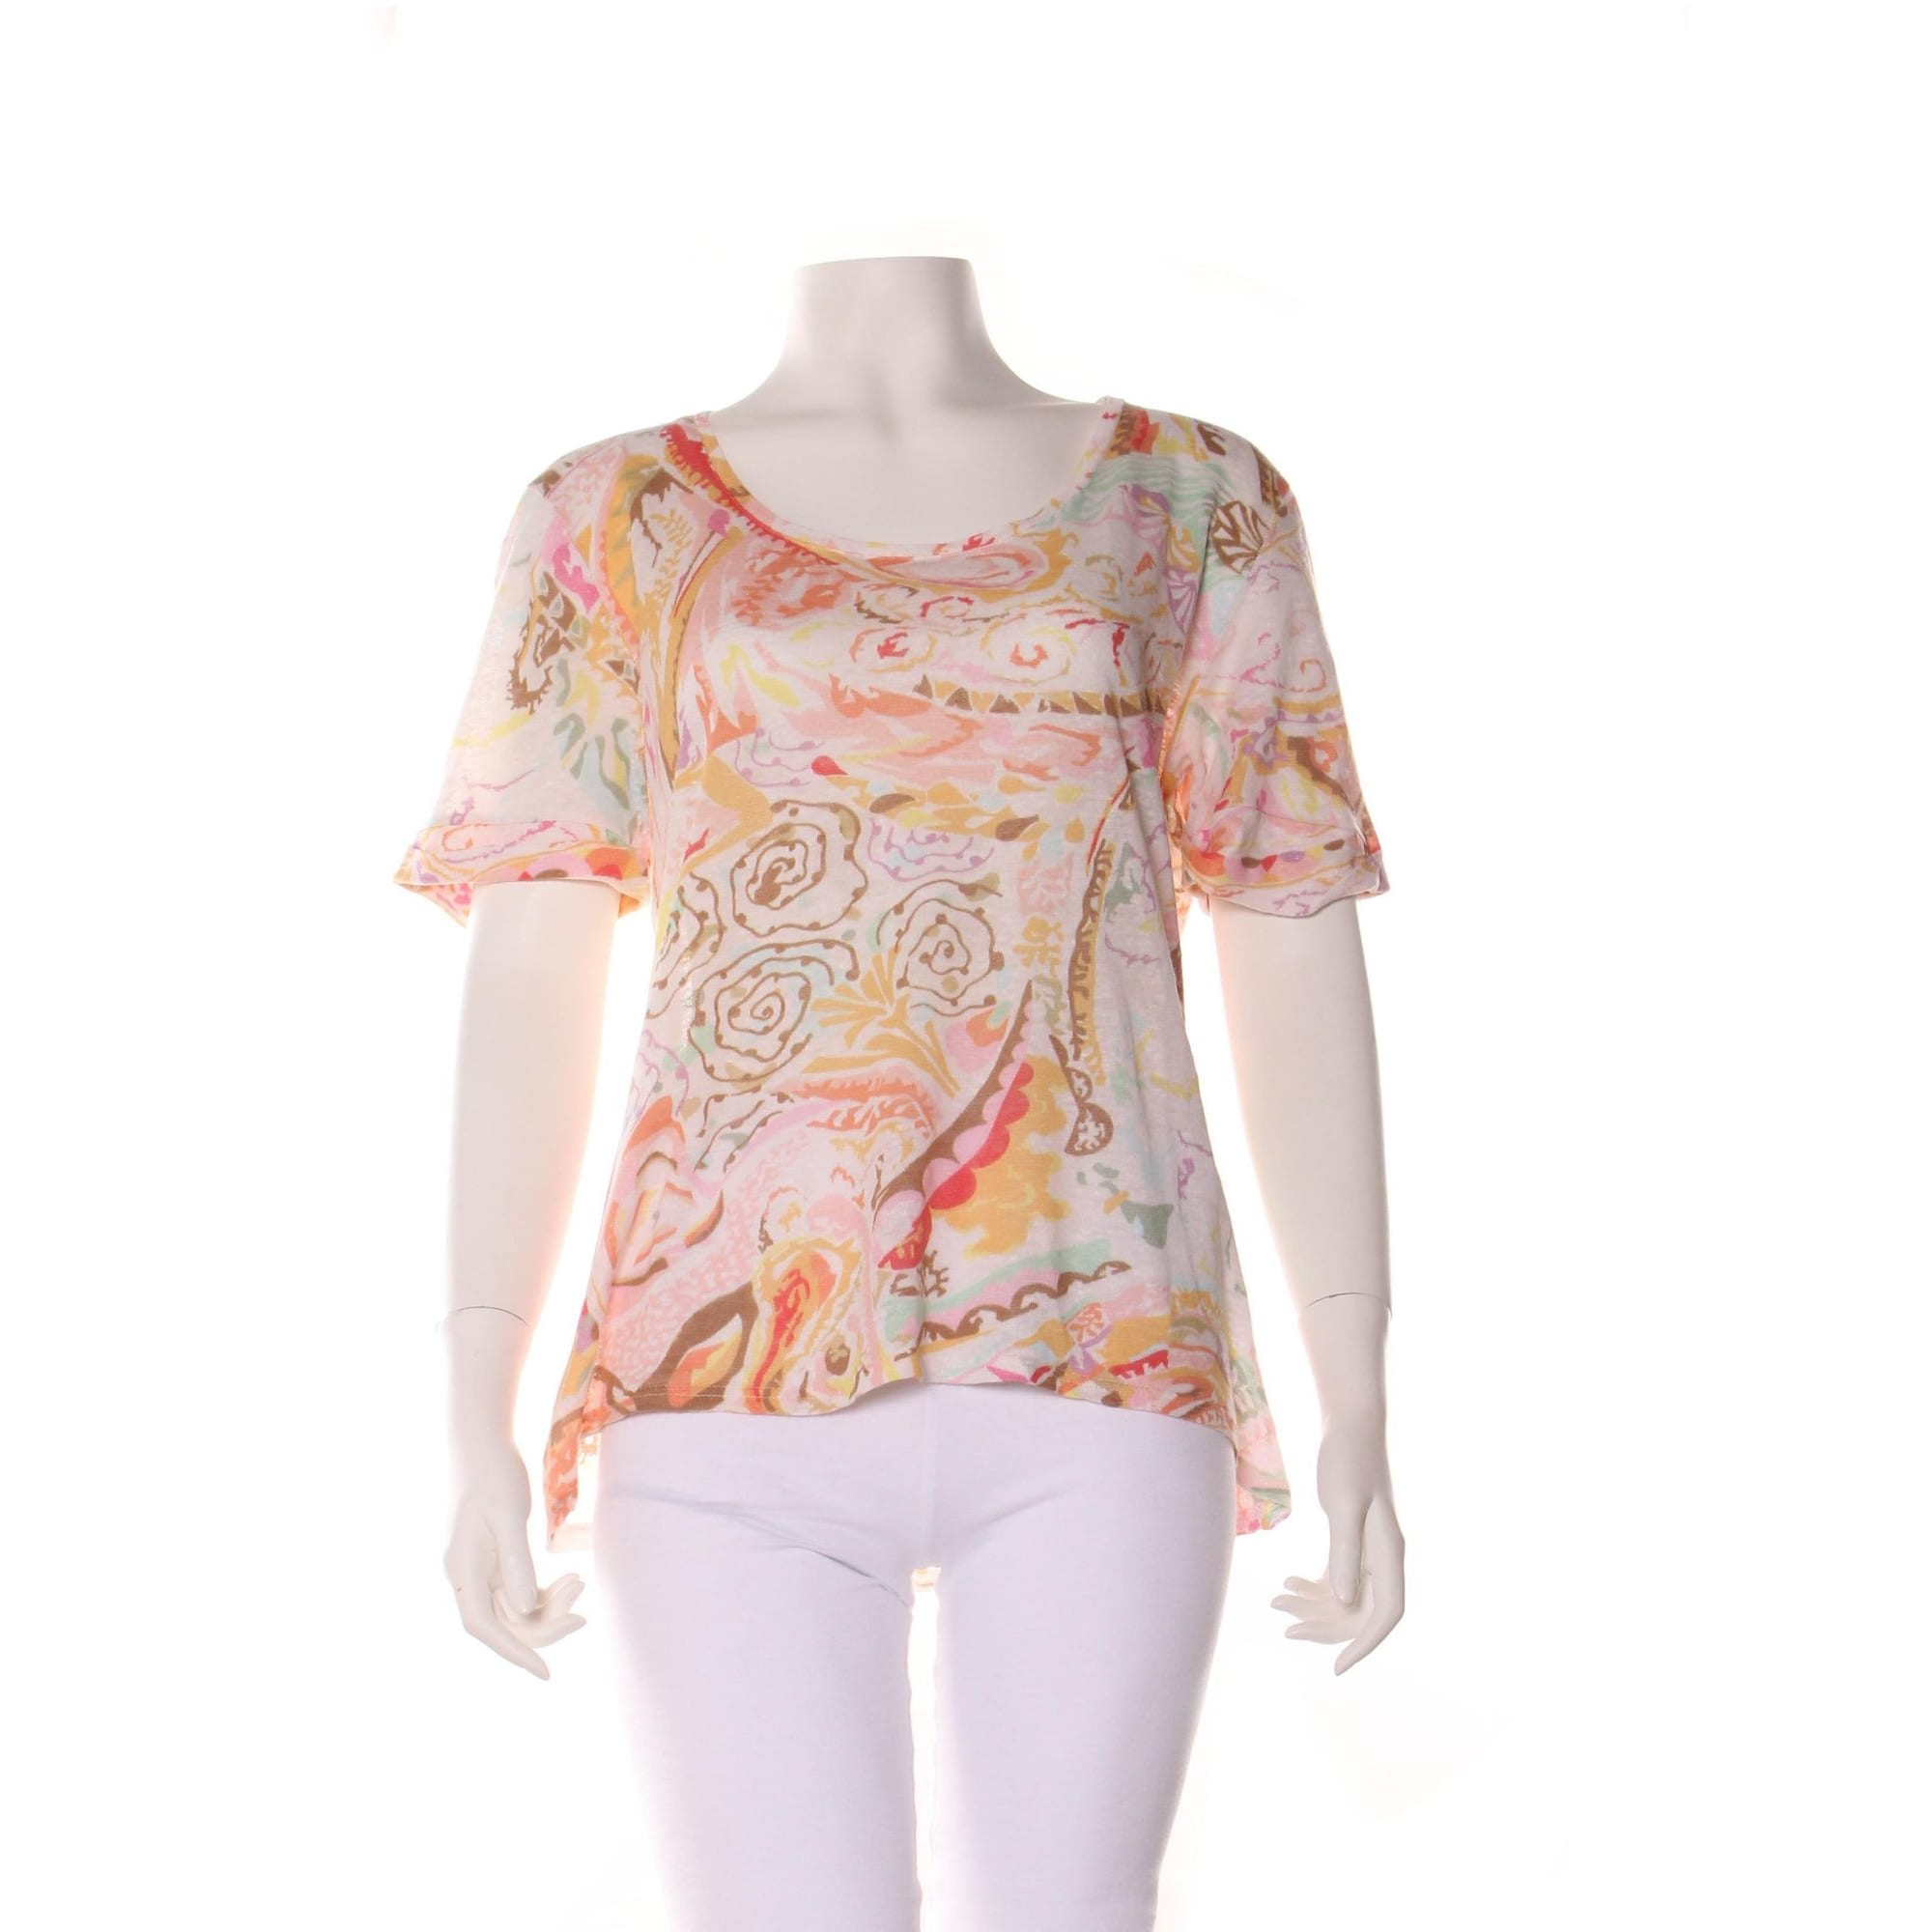 Top, tee-shirt GERARD DAREL Multicouleur